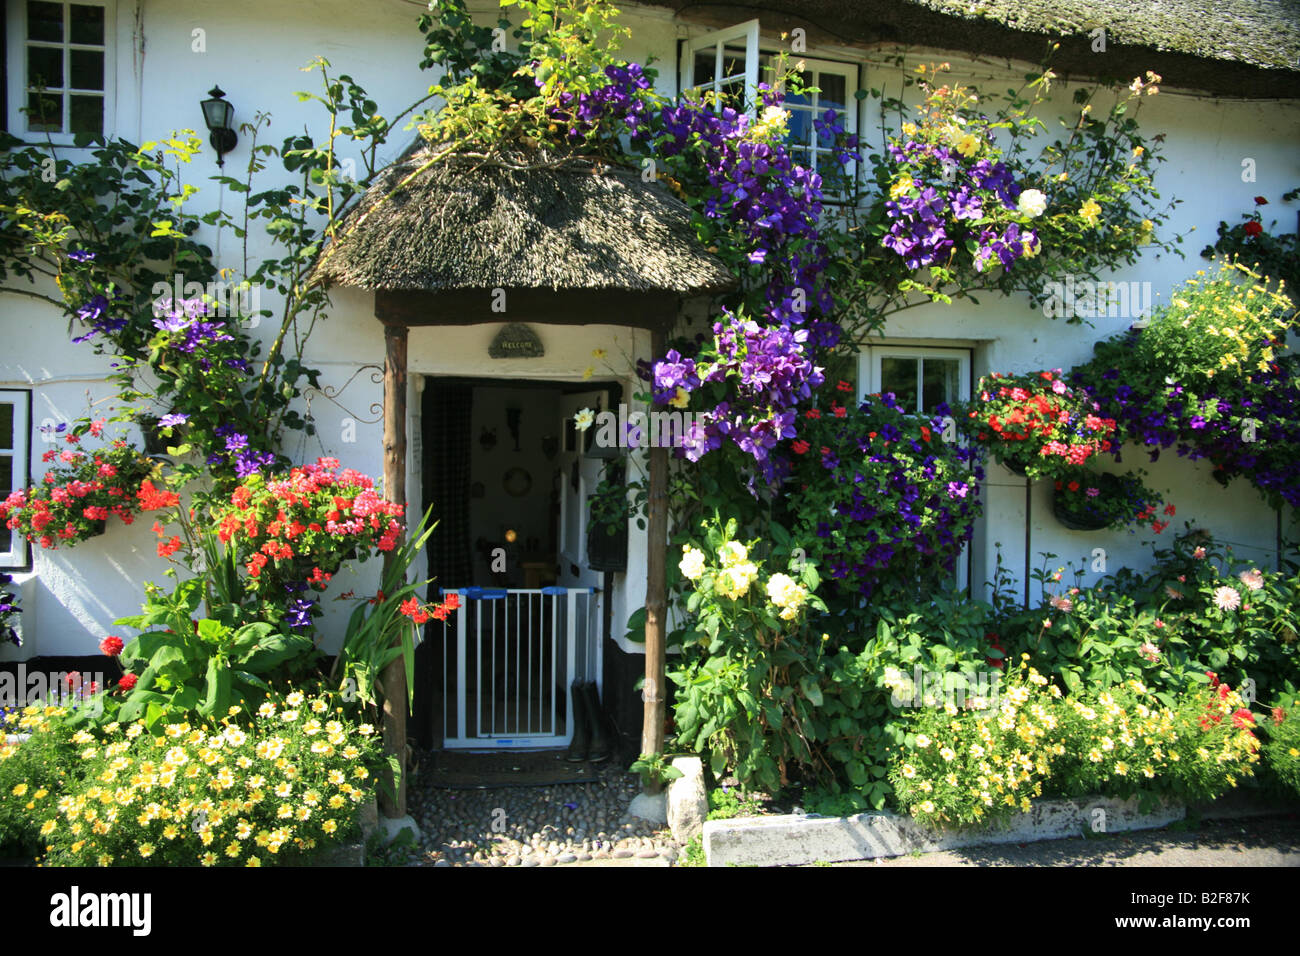 Cool Beautiful White Painted Cob And Thatch Cottages With Summer Flower Largest Home Design Picture Inspirations Pitcheantrous